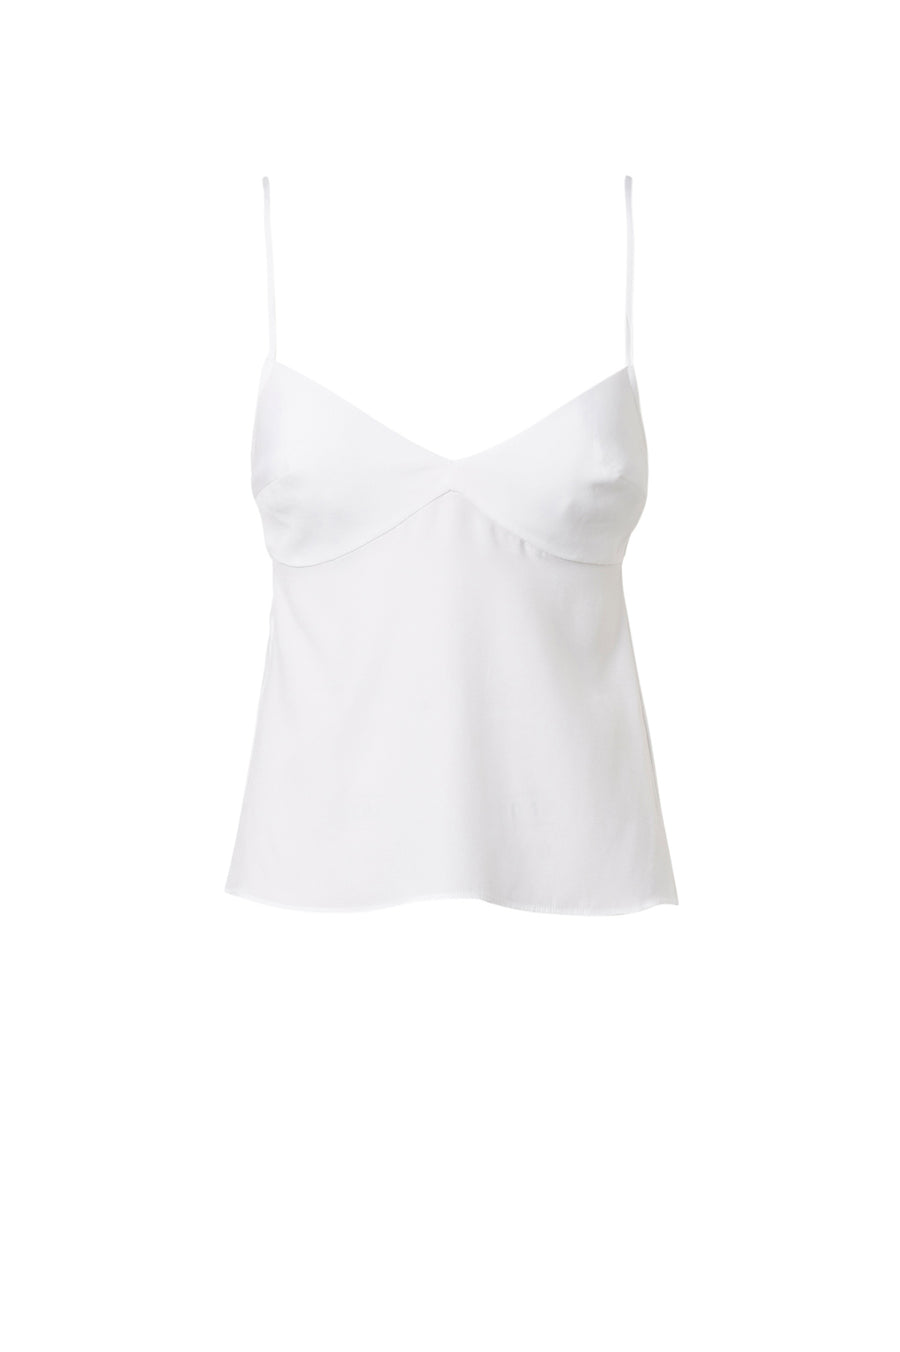 The camisole features adjustable shoulder straps and a flattering sweetheart neckline.